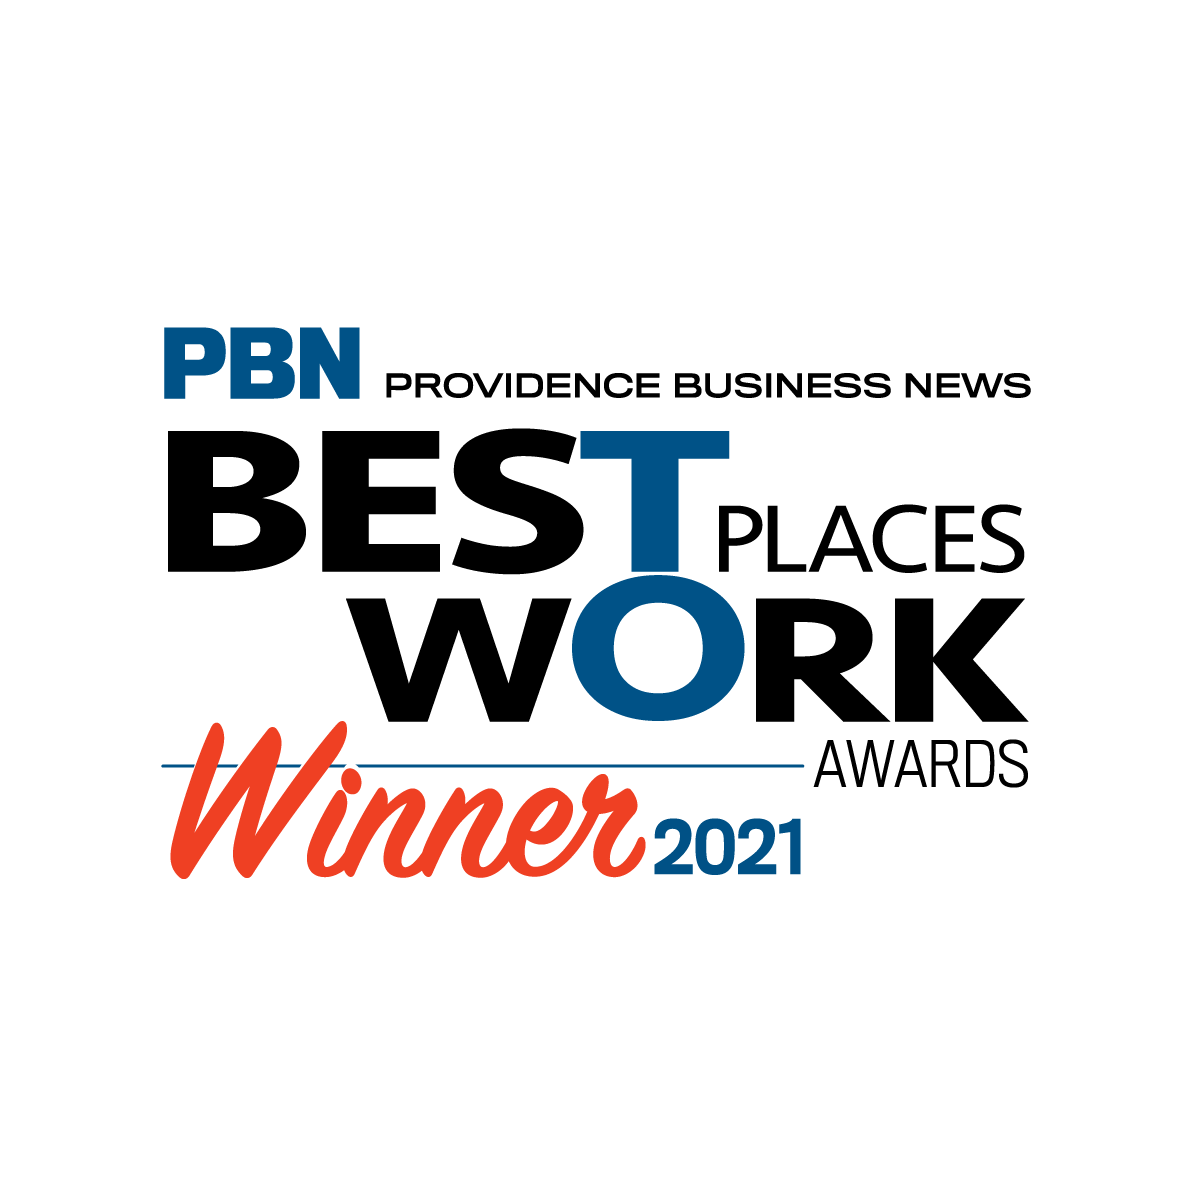 PBN Best Places to Work